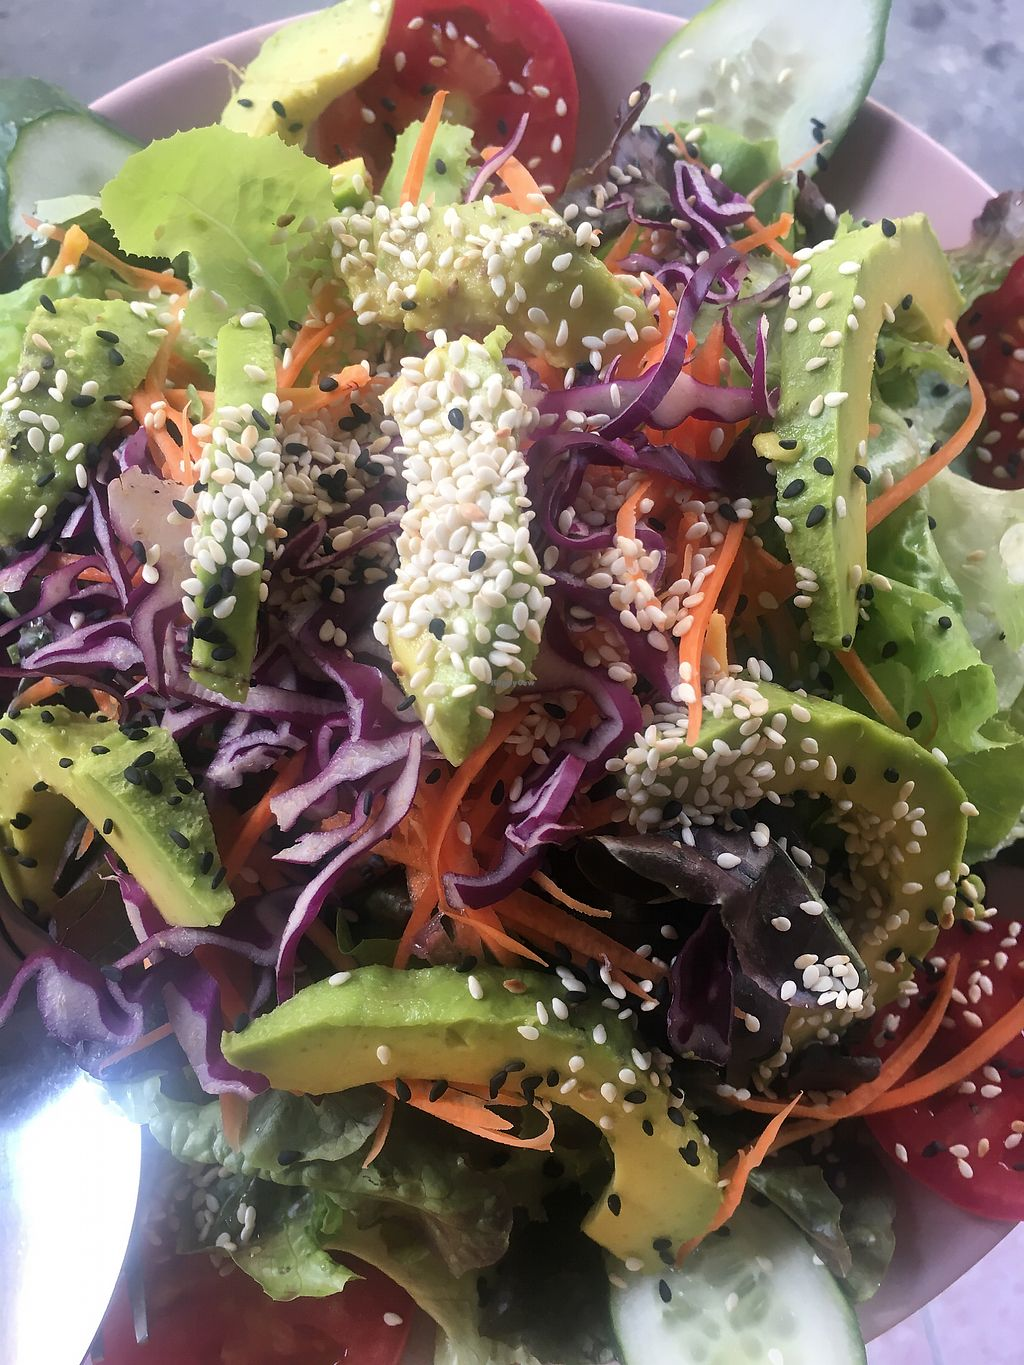 """Photo of Bee Vegan  by <a href=""""/members/profile/MichaelaEm%C3%ADliaMinaro"""">MichaelaEmíliaMinaro</a> <br/>Avocado salad  <br/> March 17, 2018  - <a href='/contact/abuse/image/87311/371765'>Report</a>"""